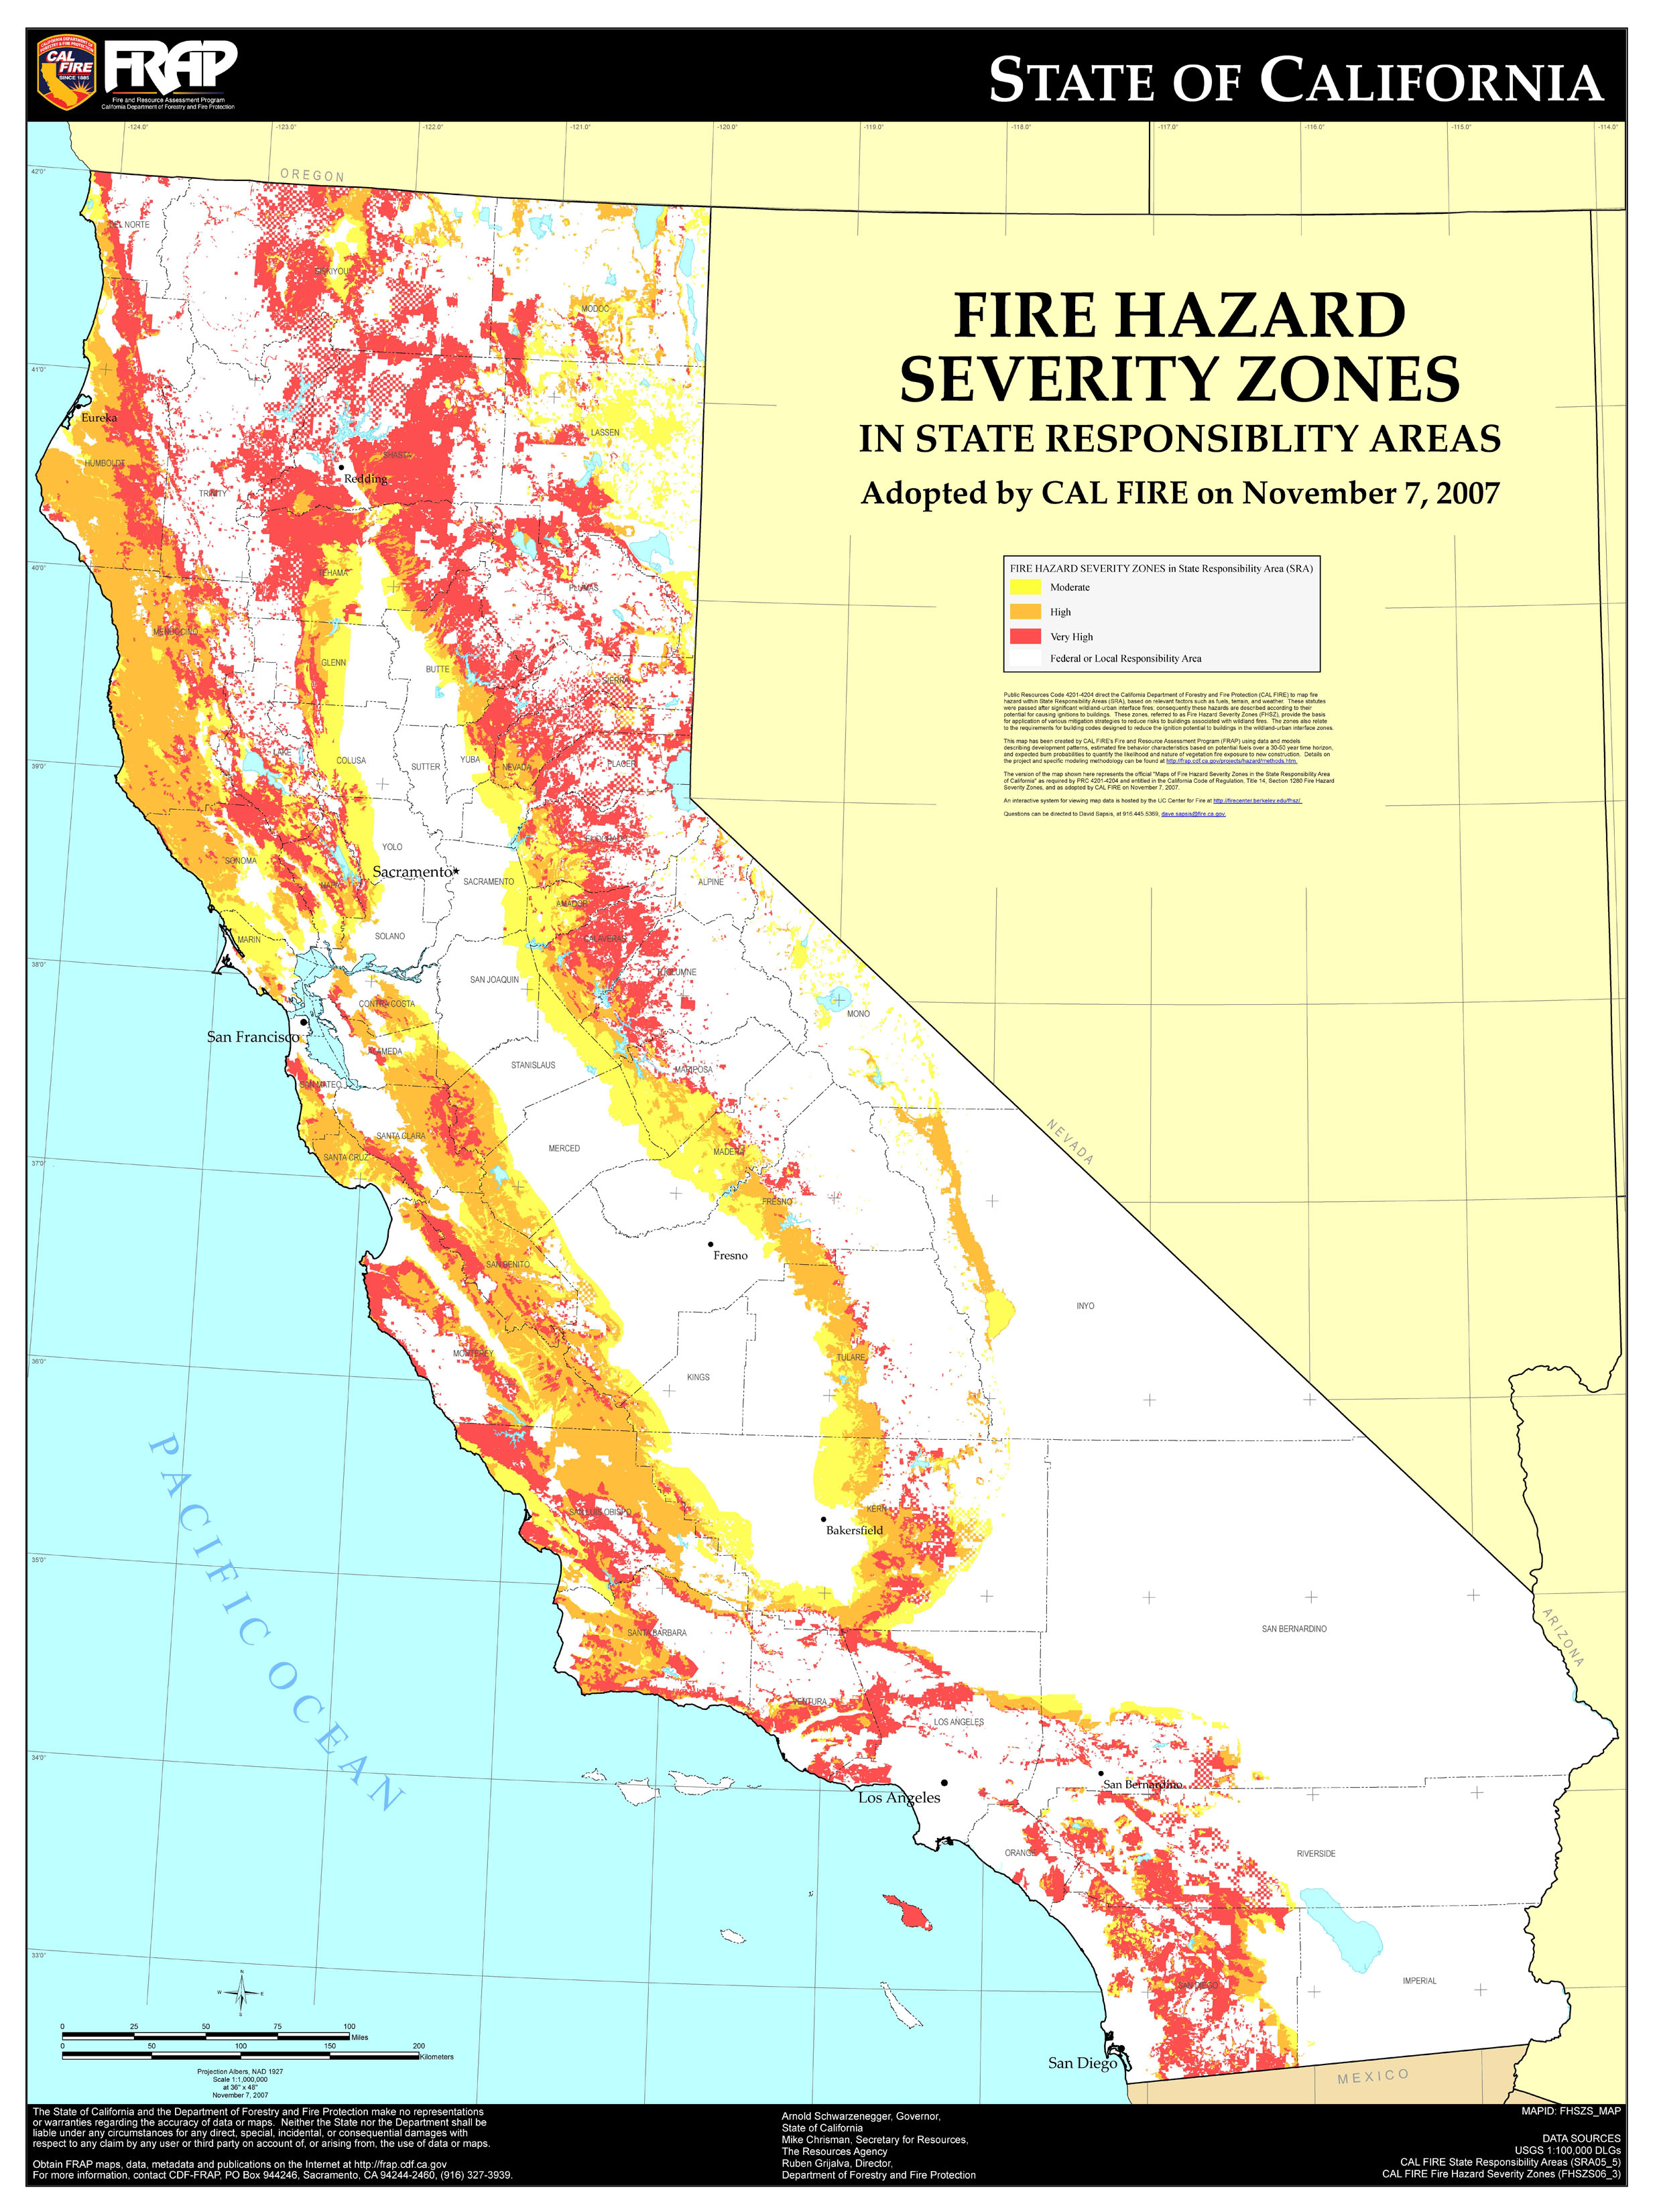 Map Of California Wildfires California State Map Current Wildfires - Map Of Current Fires In Southern California